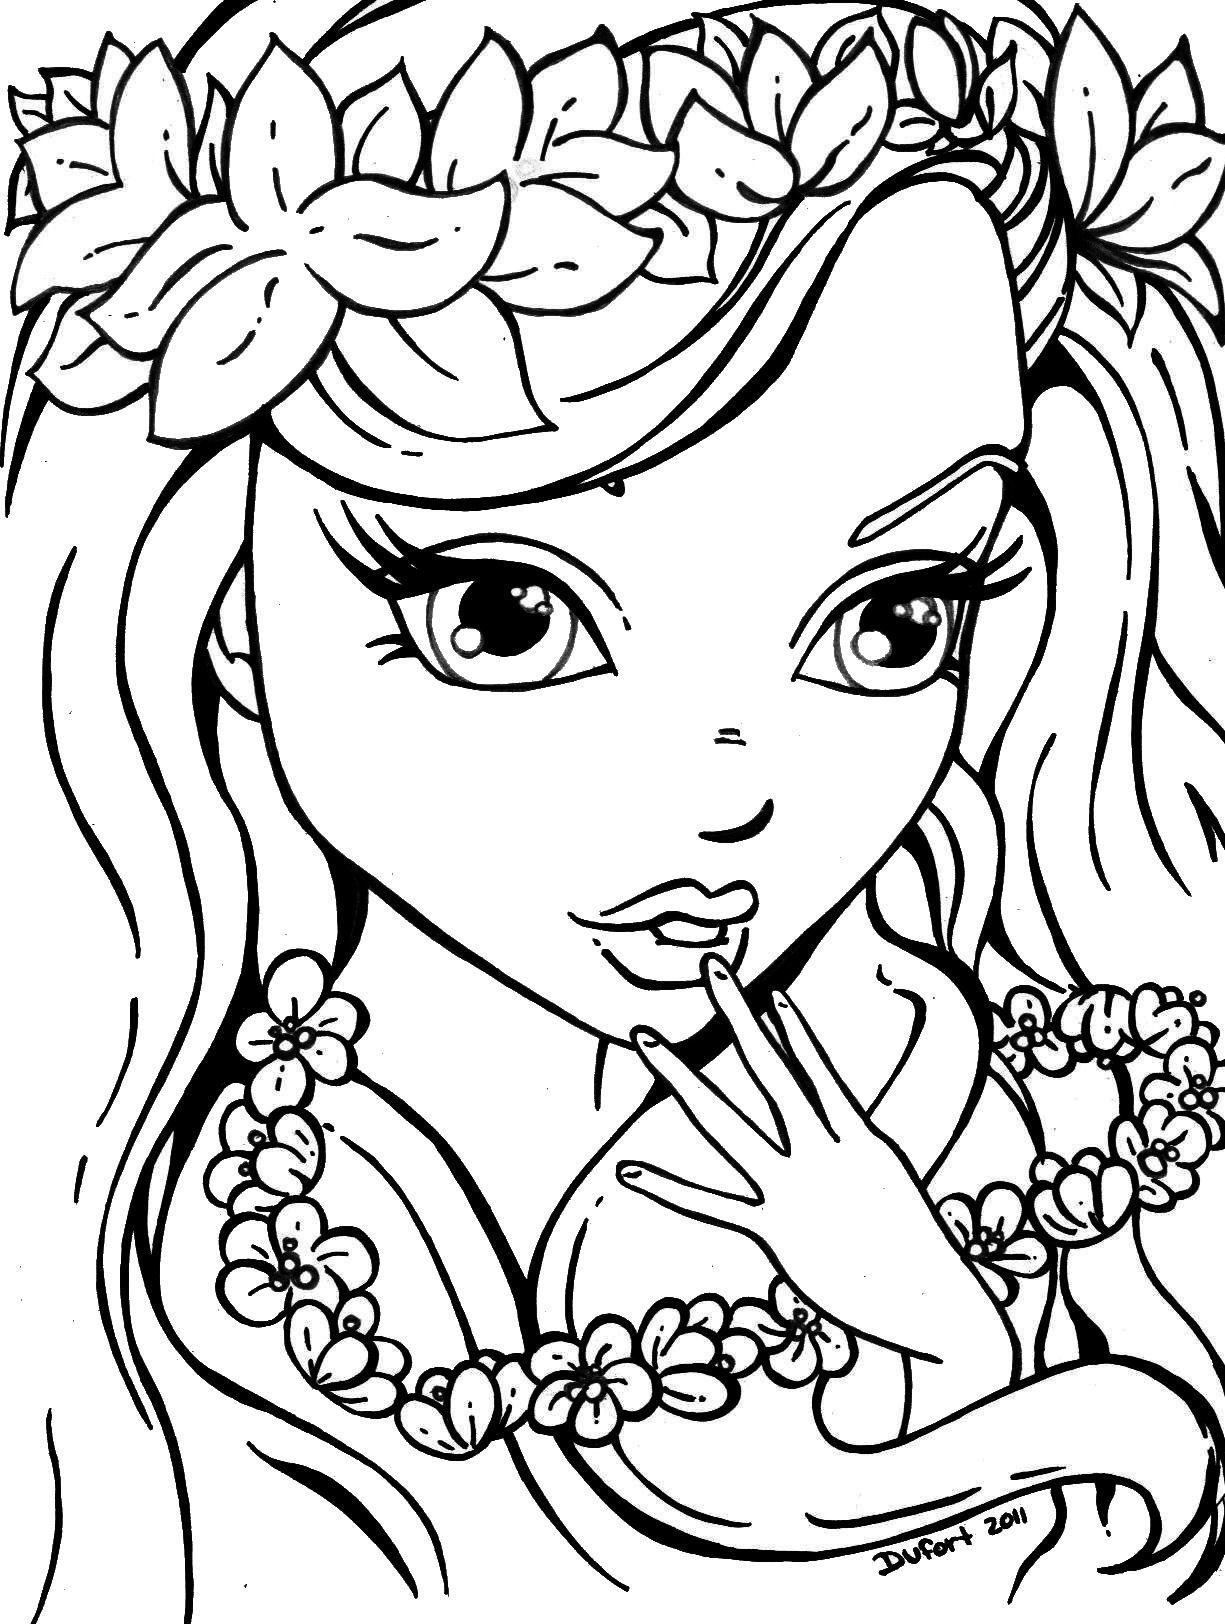 Coloring Sheets For Girls Free Pretty Girl Coloring Page Download Free Clip Art Free Mermaid Coloring Pages Cool Coloring Pages Cute Coloring Pages